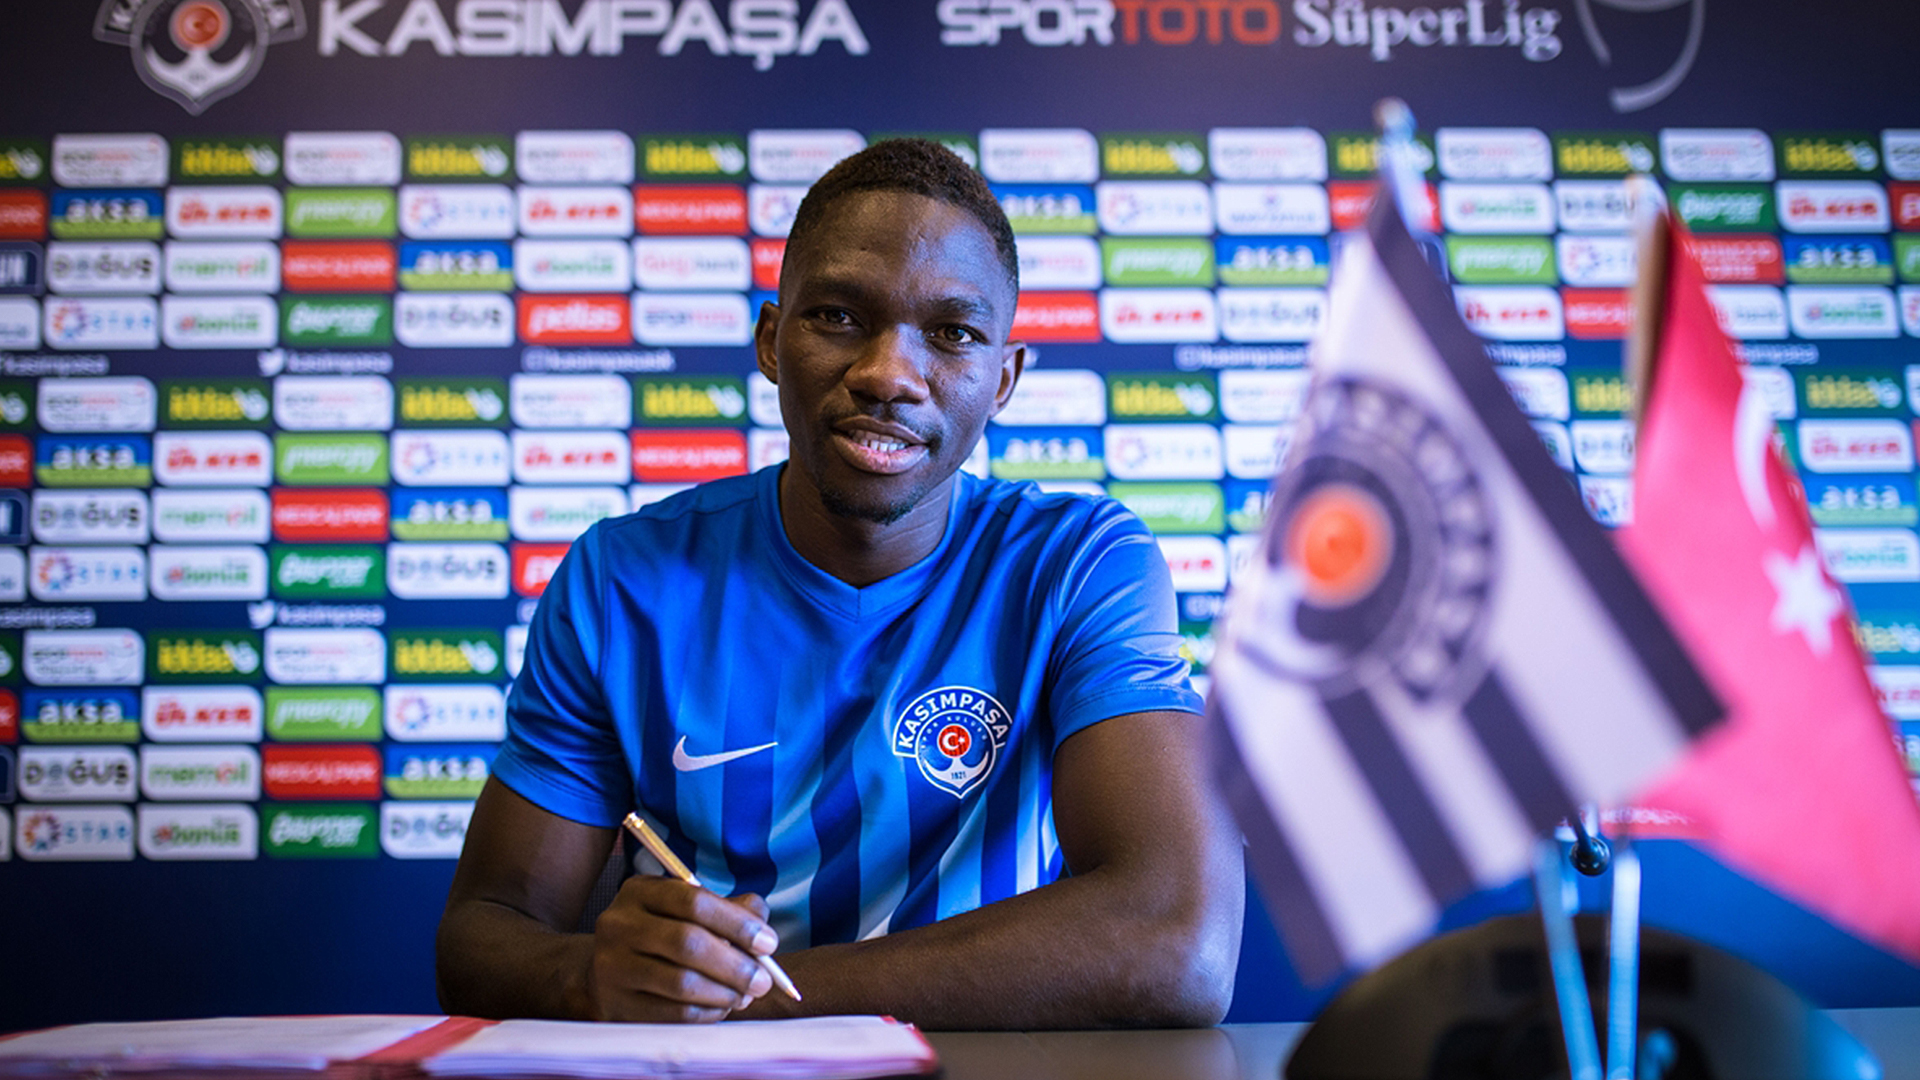 Kenneth Omeru rejoins Kasimpasa on loan